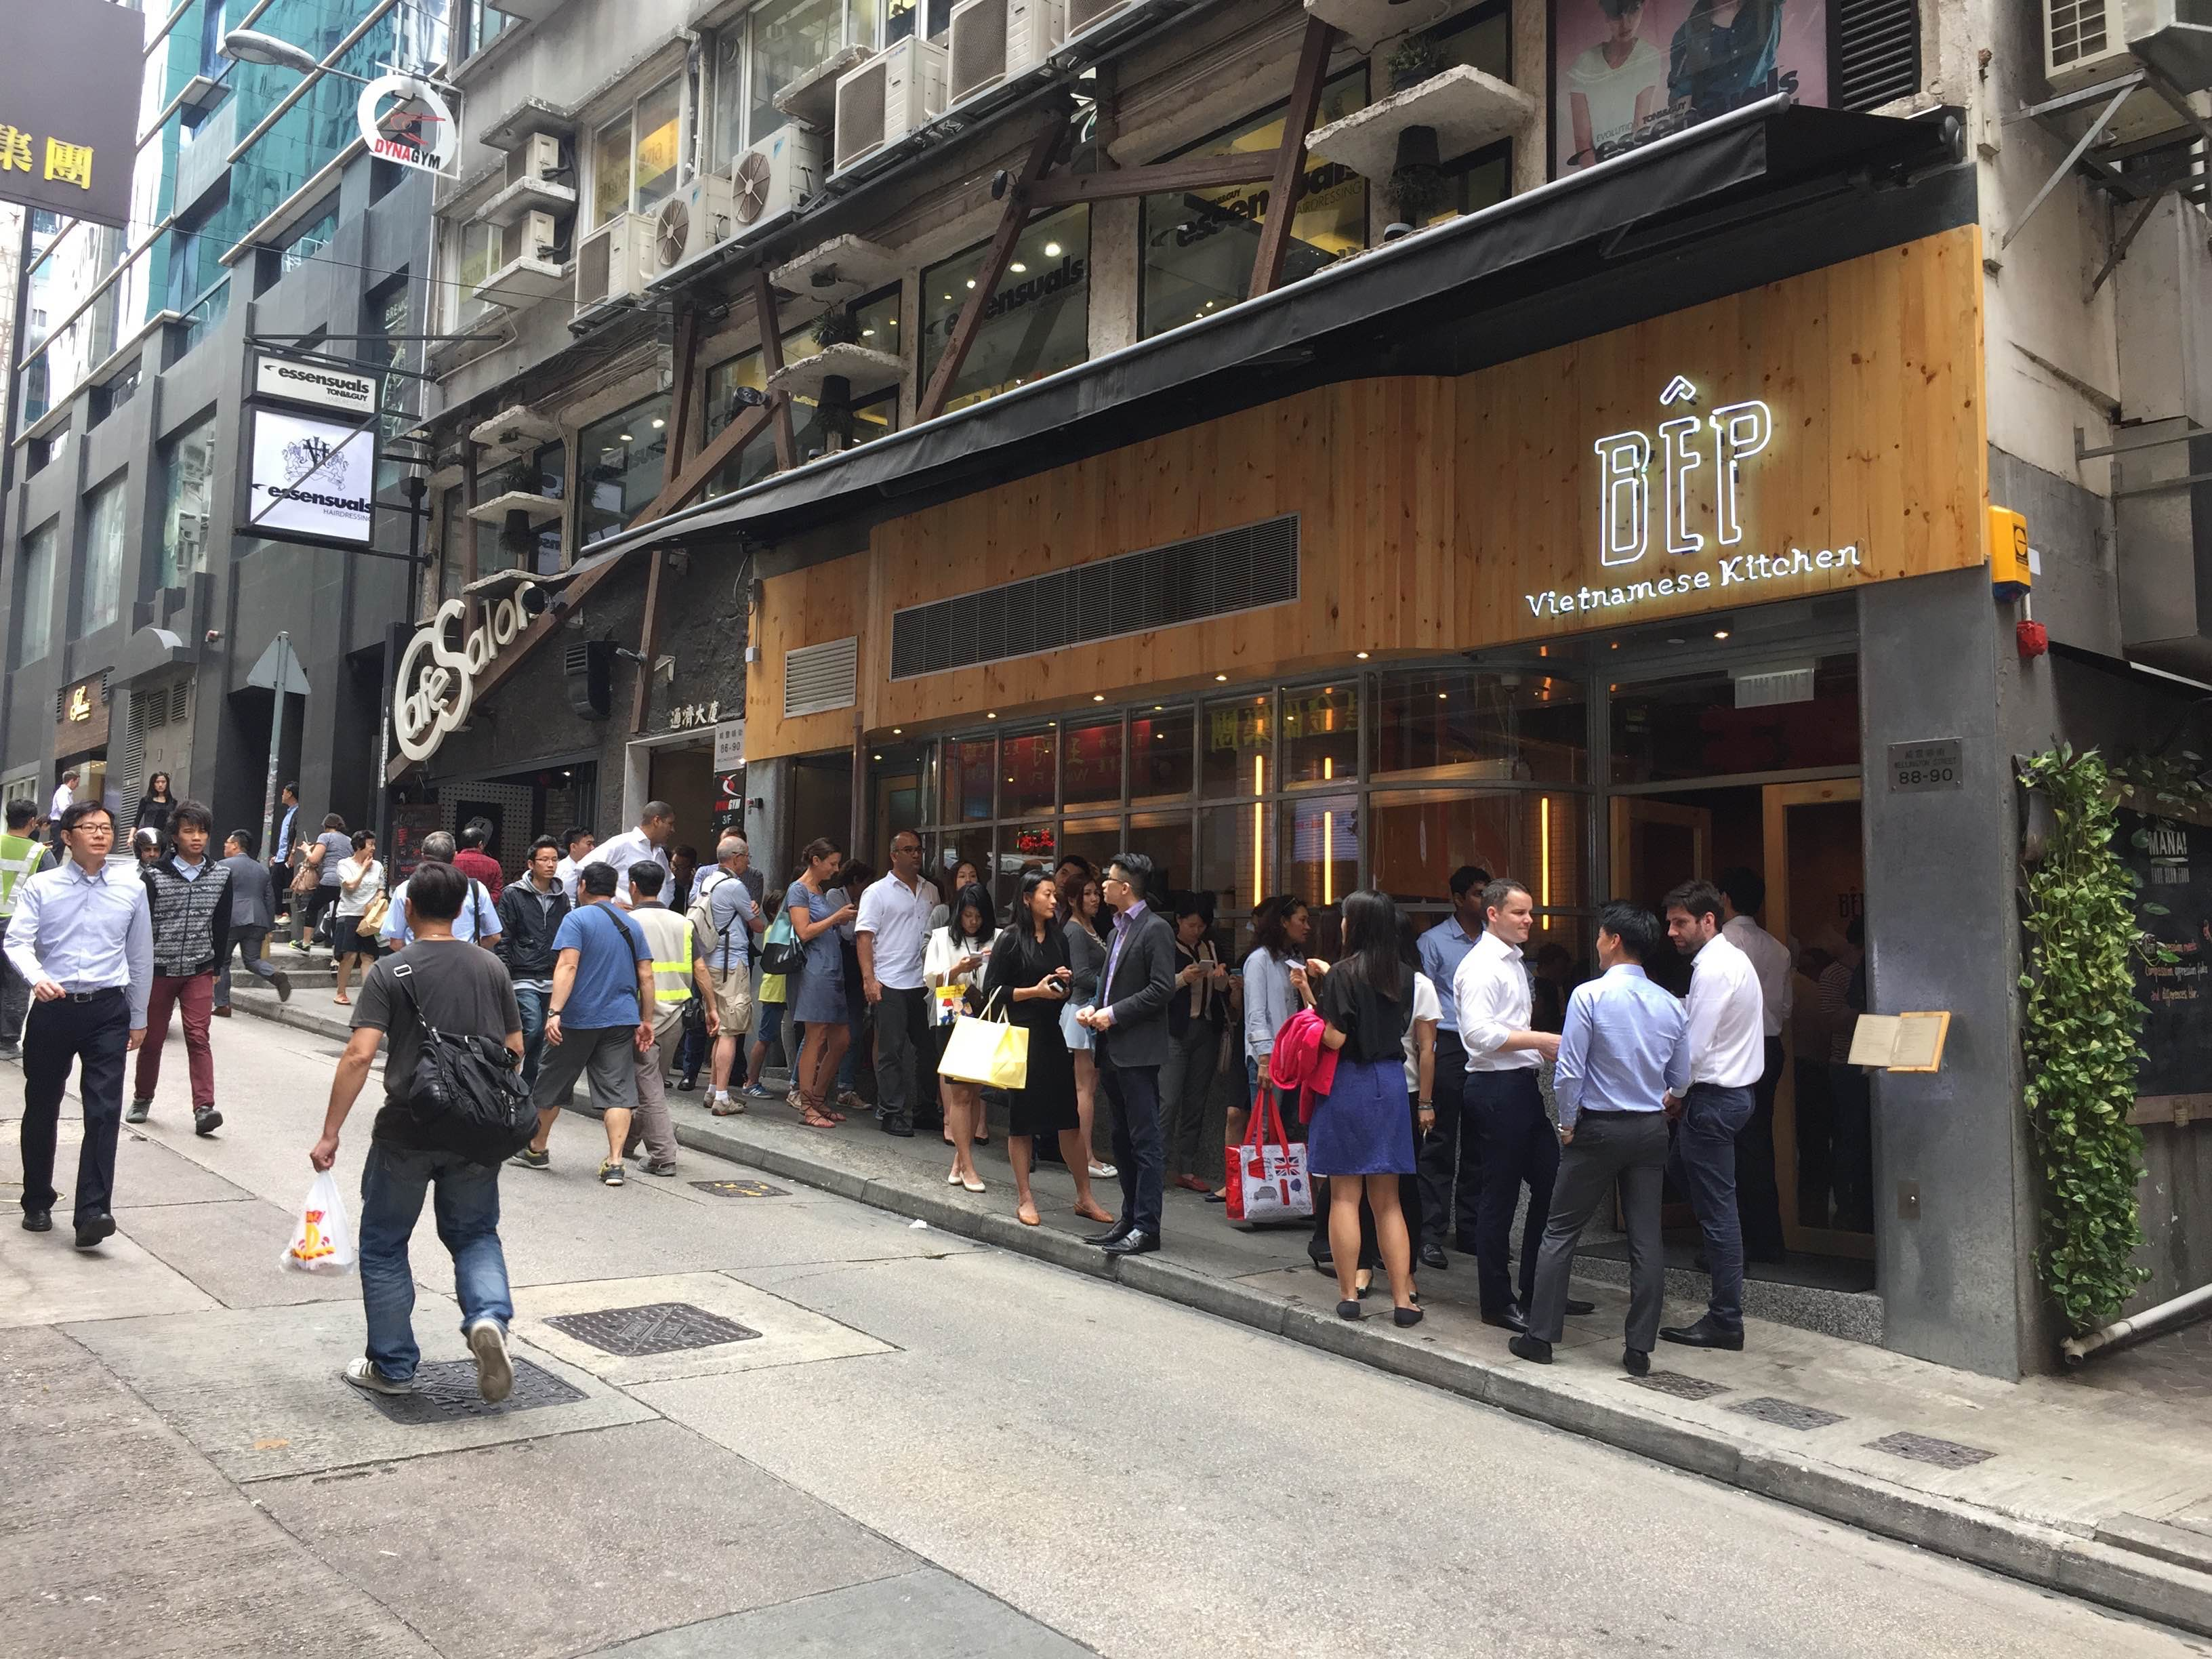 Restaurants on Wellington Street Central packed with foodie traffic